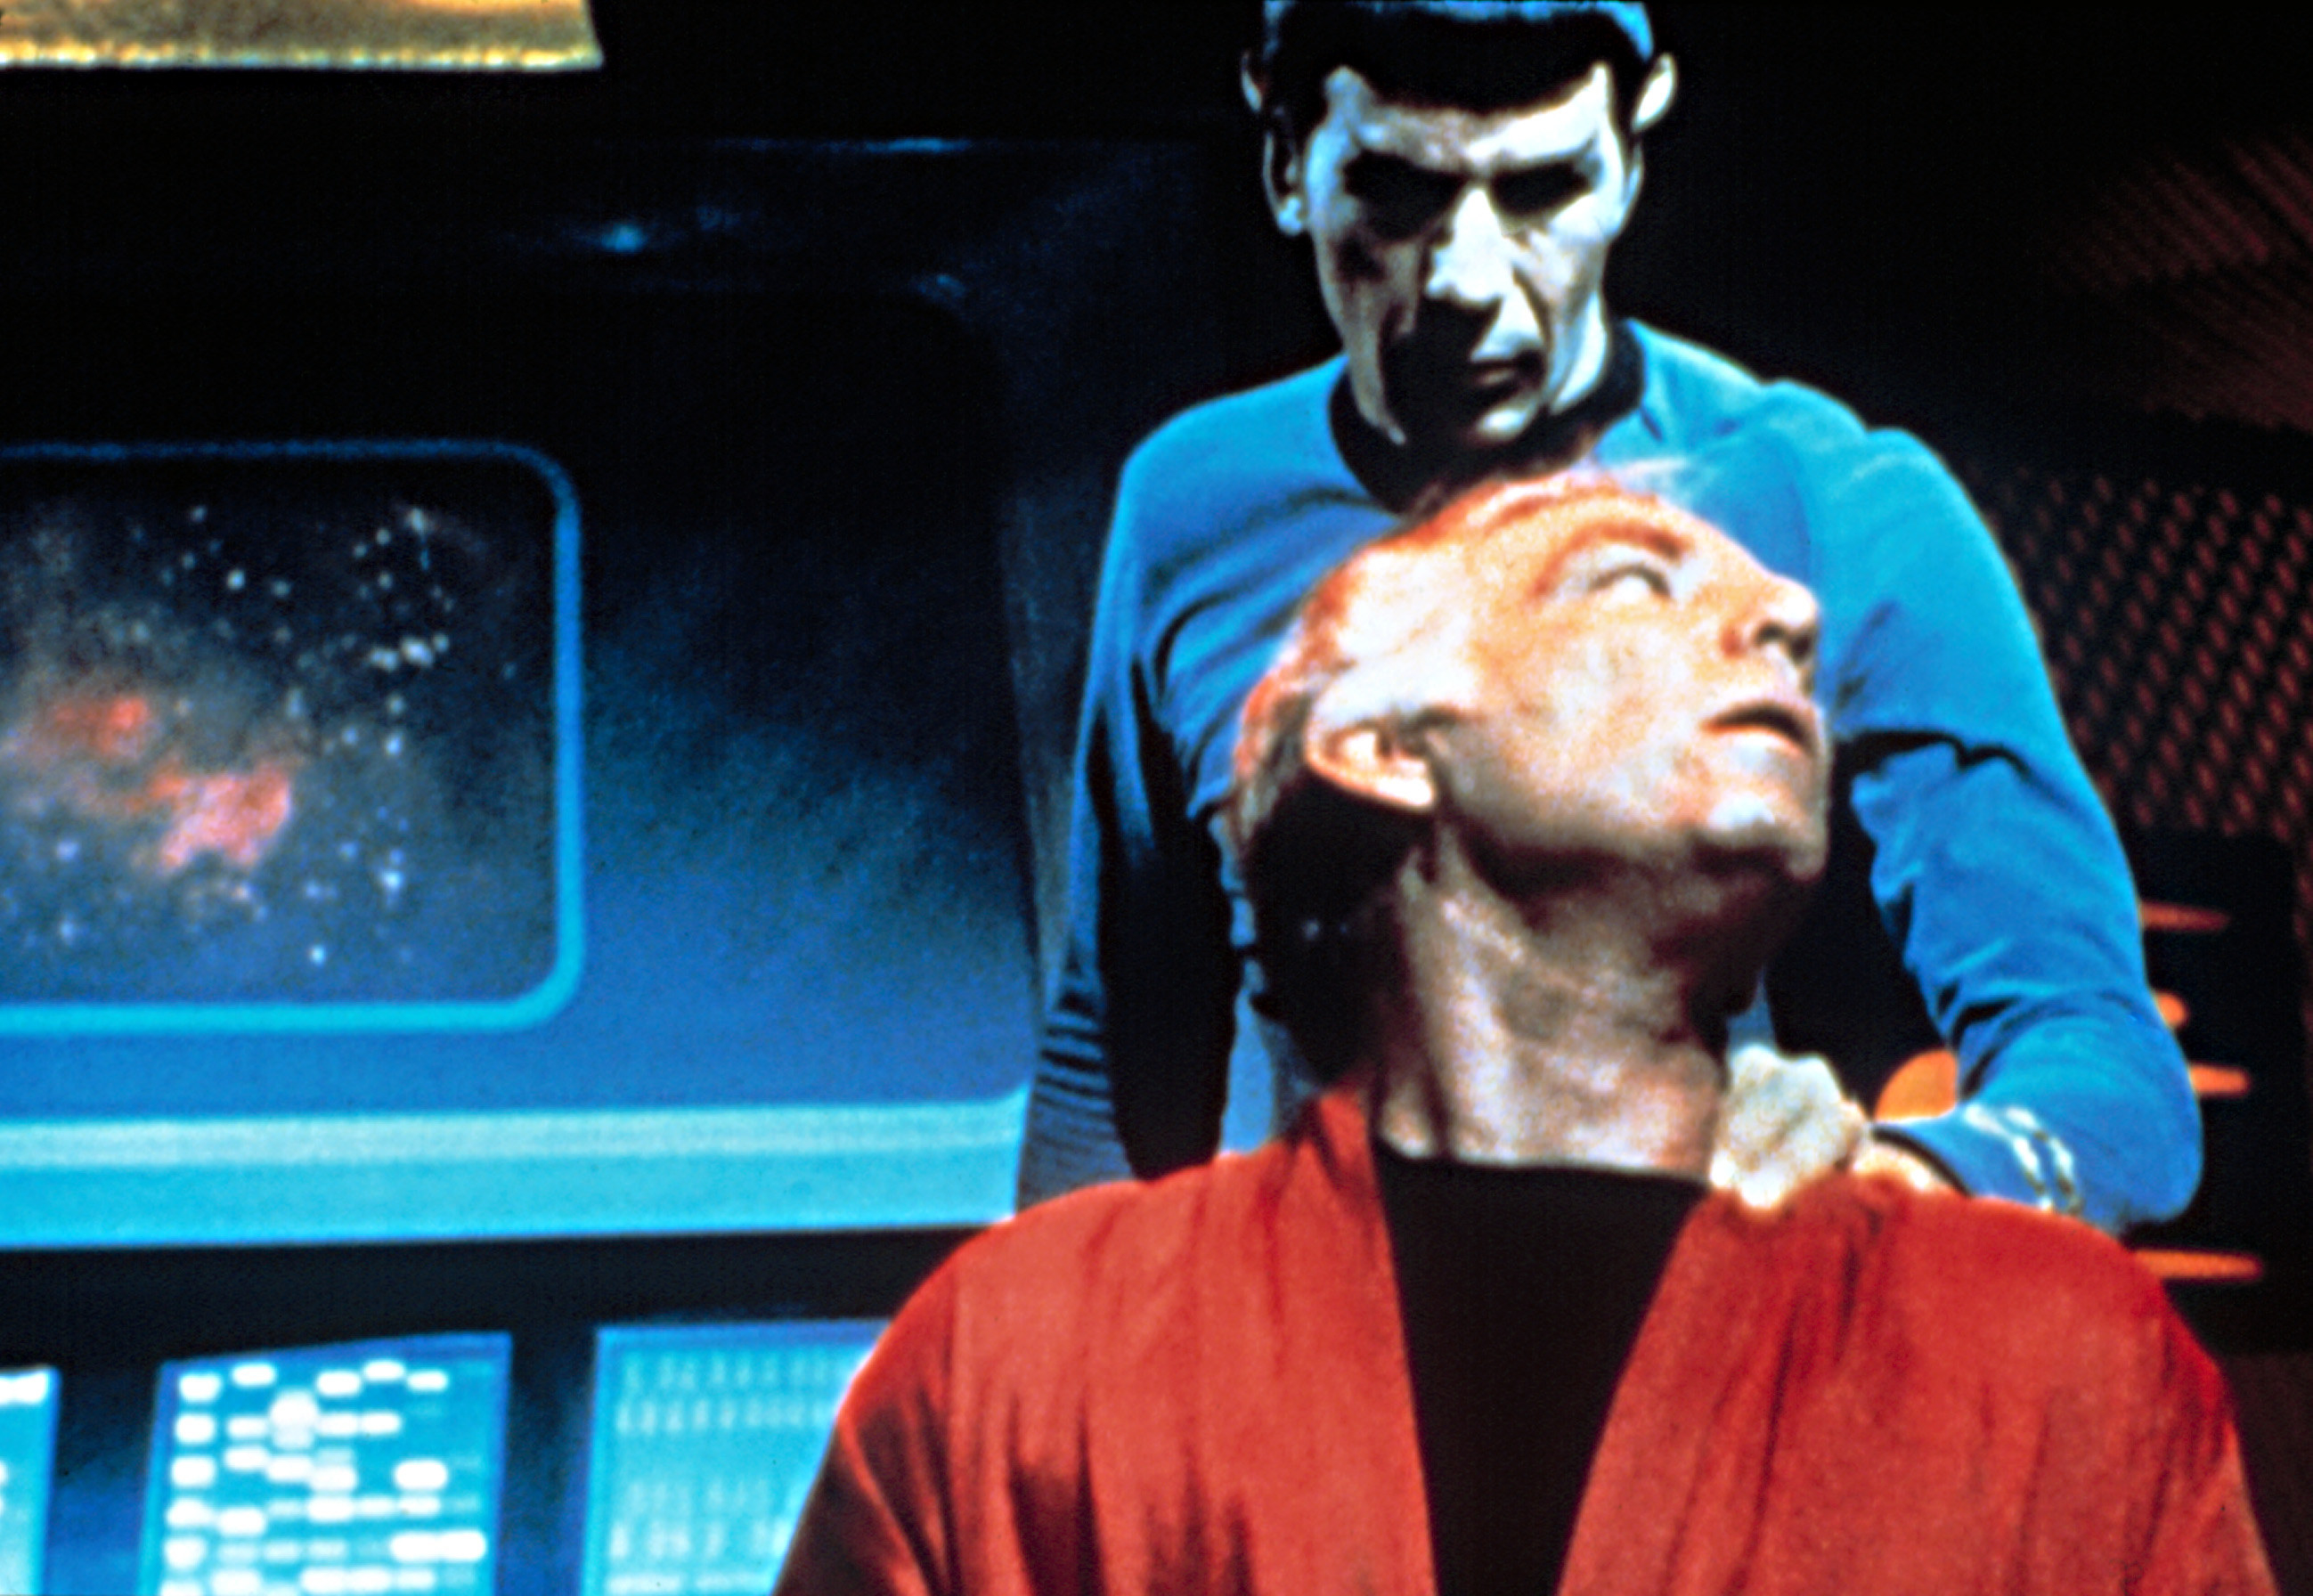 Nimoy as Spoke using the nerve pinch